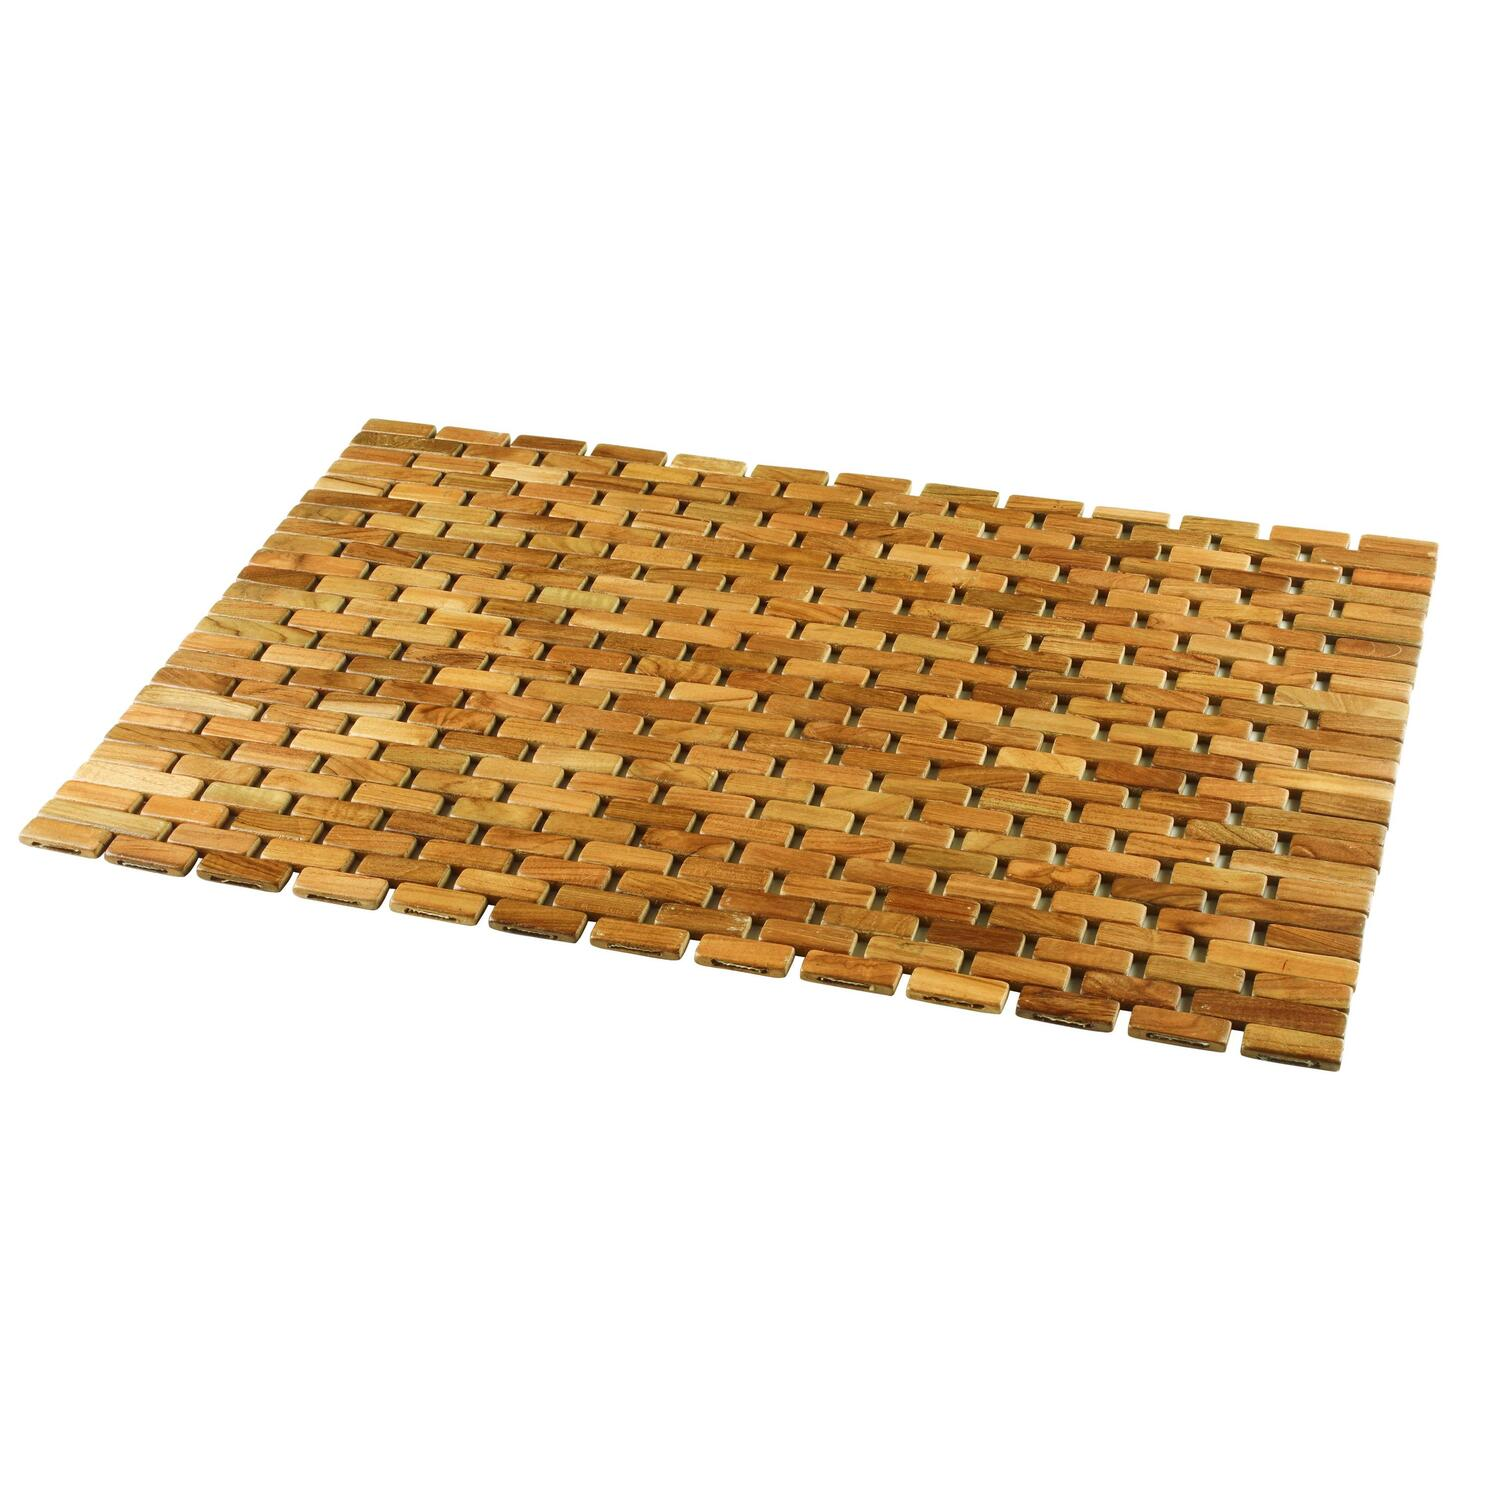 Shower Mat Conair Teak Roll Up Shower Mat By Oj Commerce 57 04 229 04